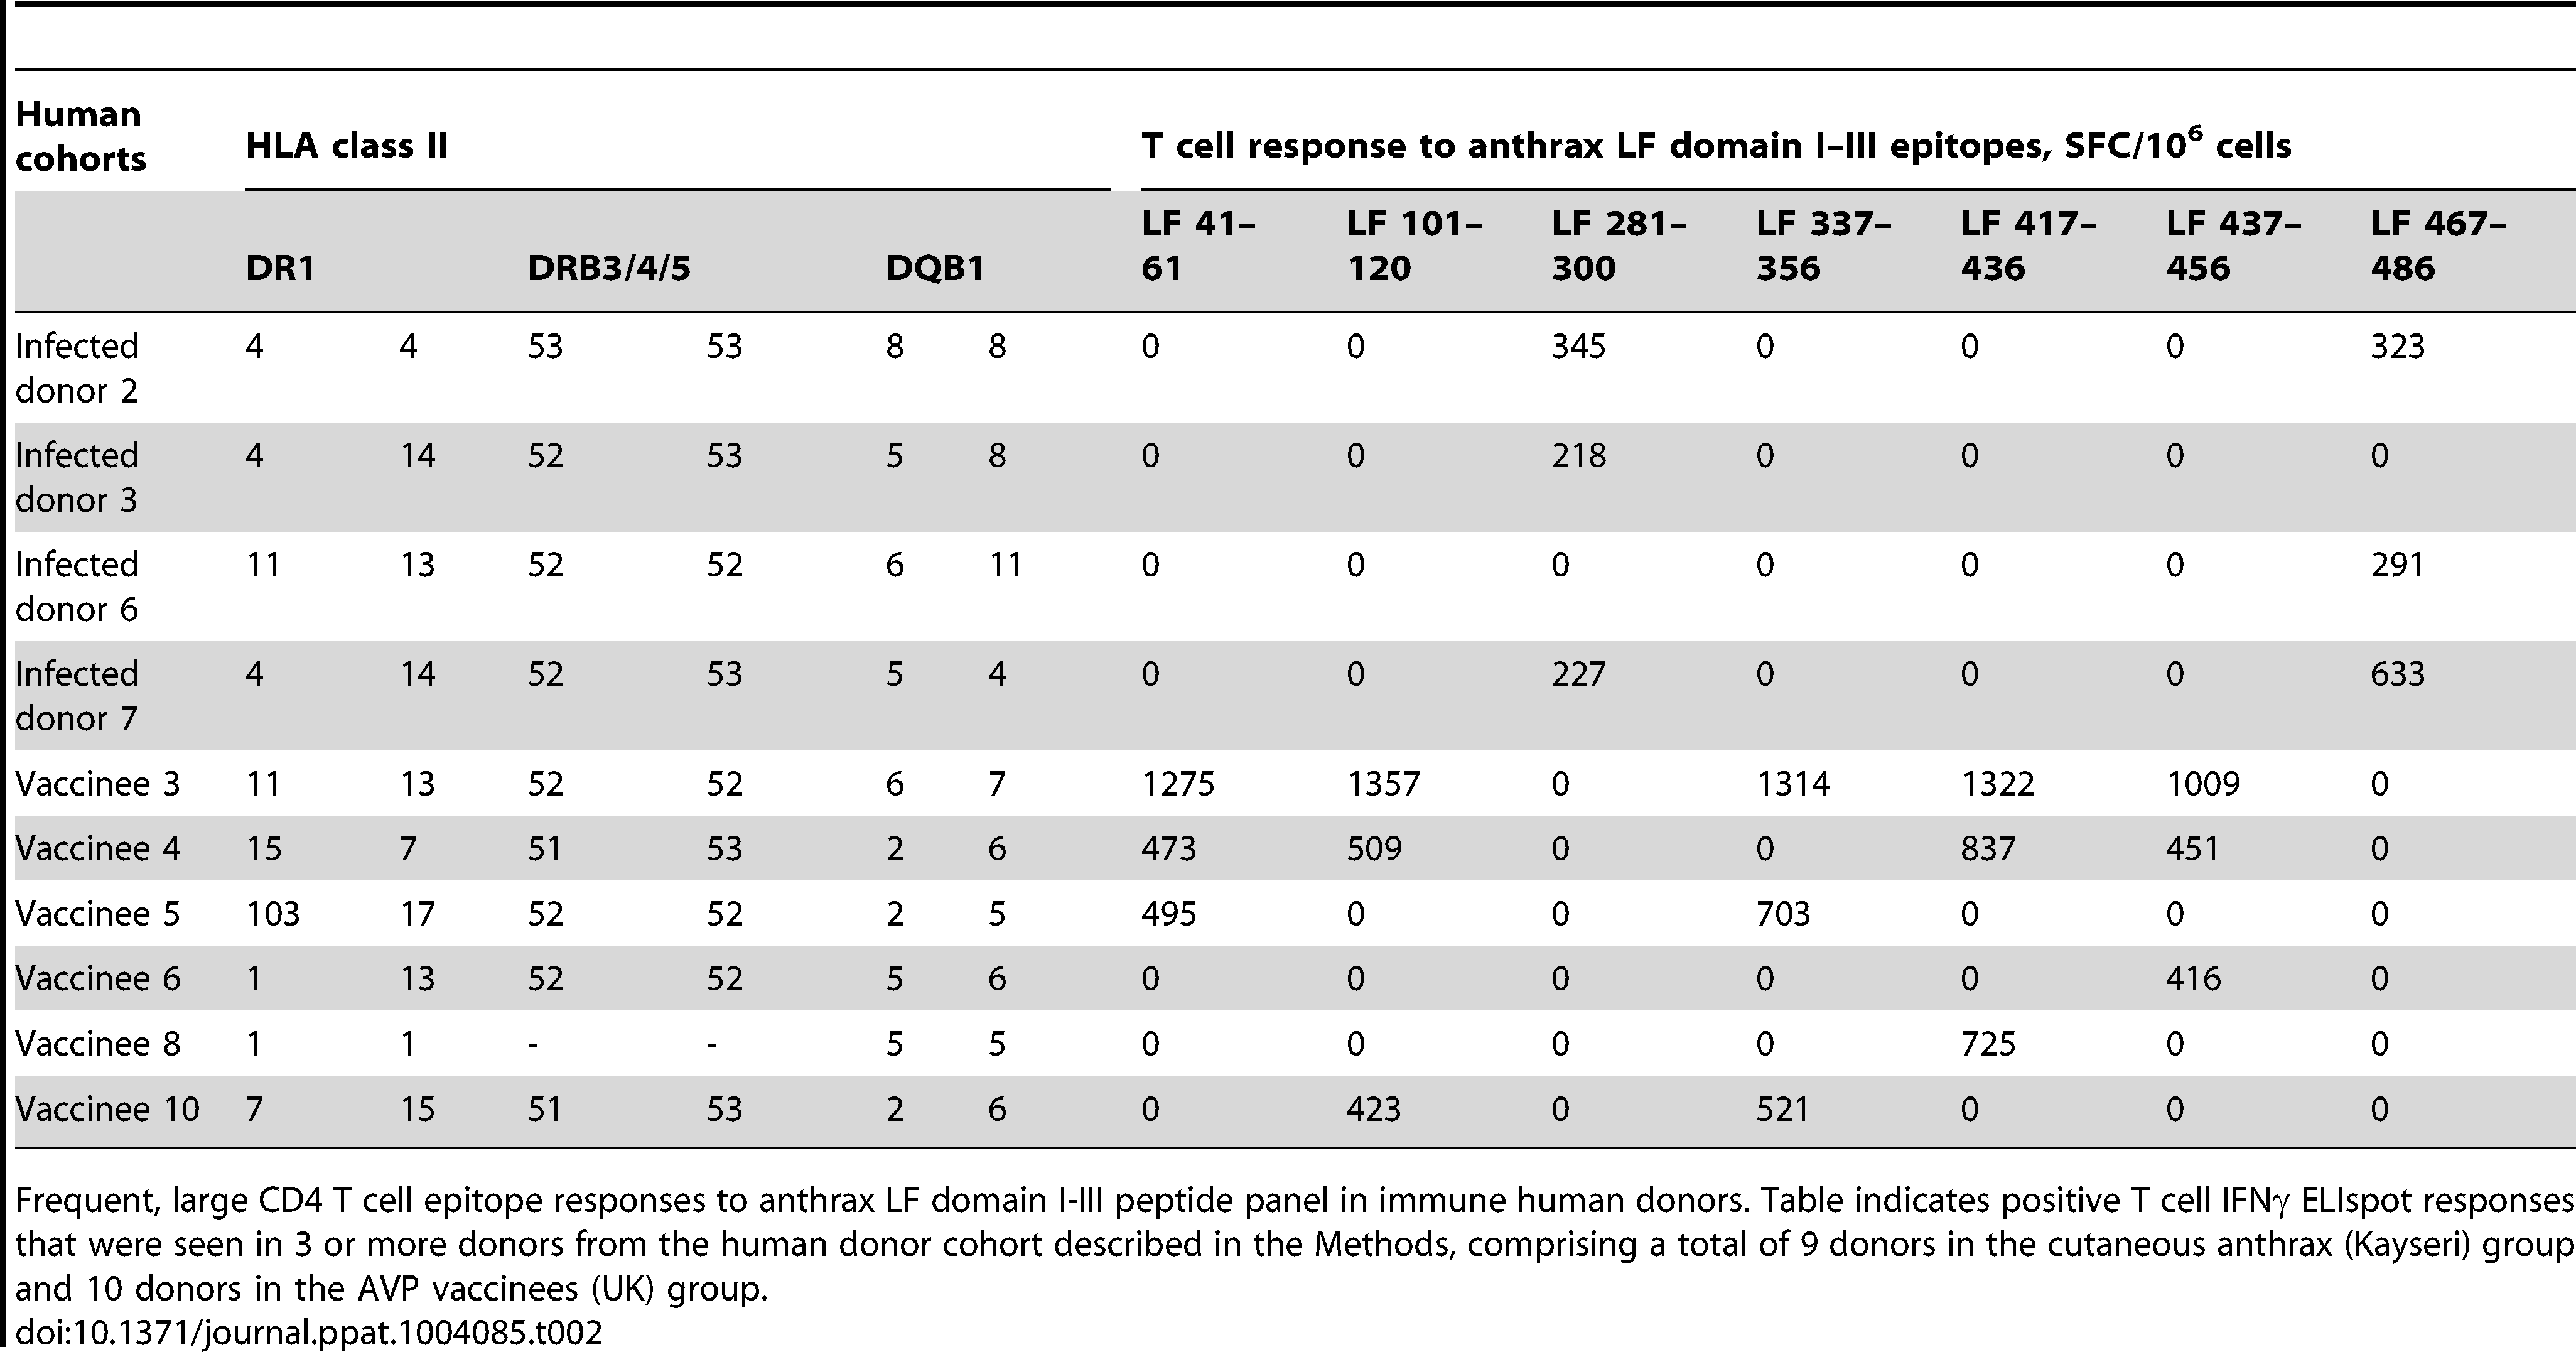 Frequent, large CD4 T cell epitope responses to anthrax LF domain I–III peptide panel in immune human donors.